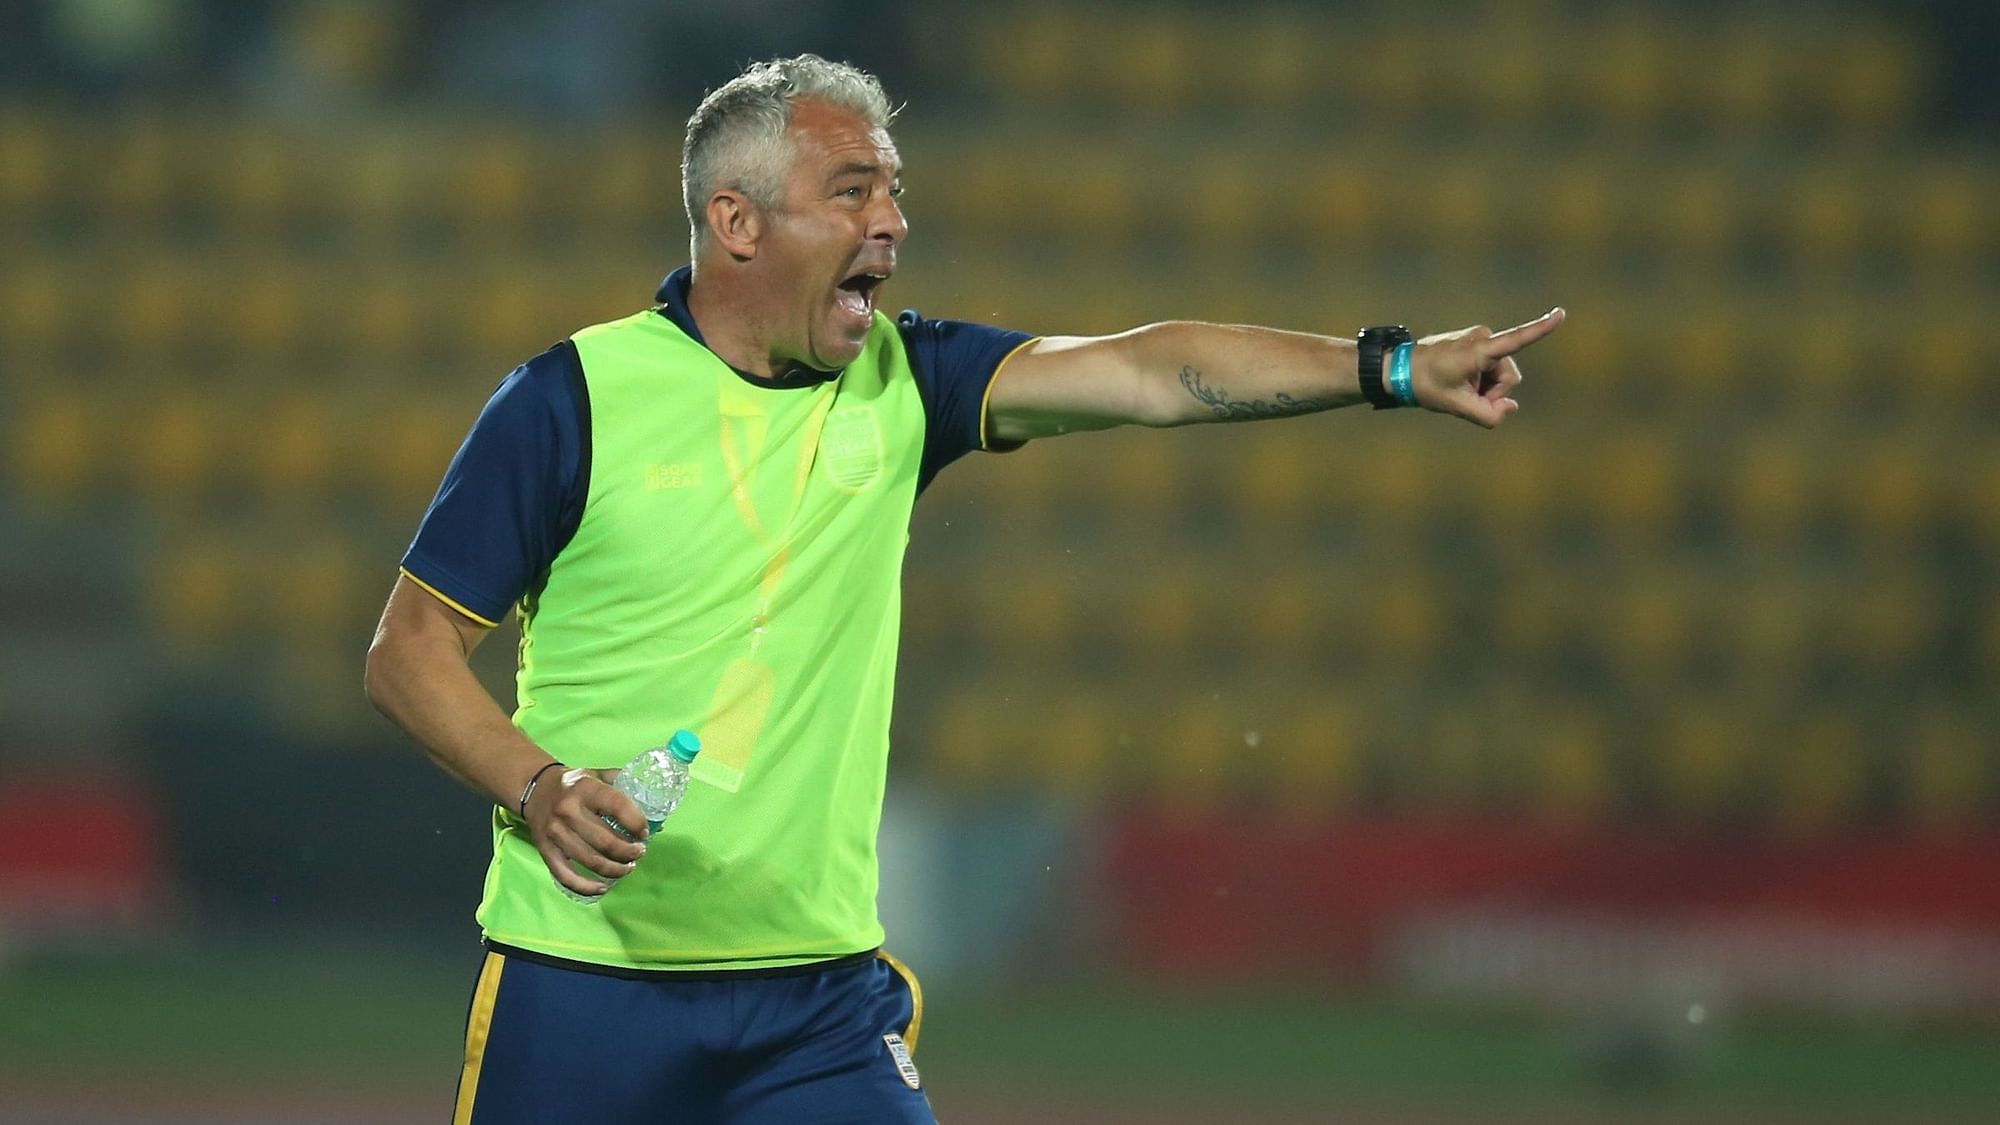 Referee Called a Player 'Monkey', Alleges Mumbai City Coach